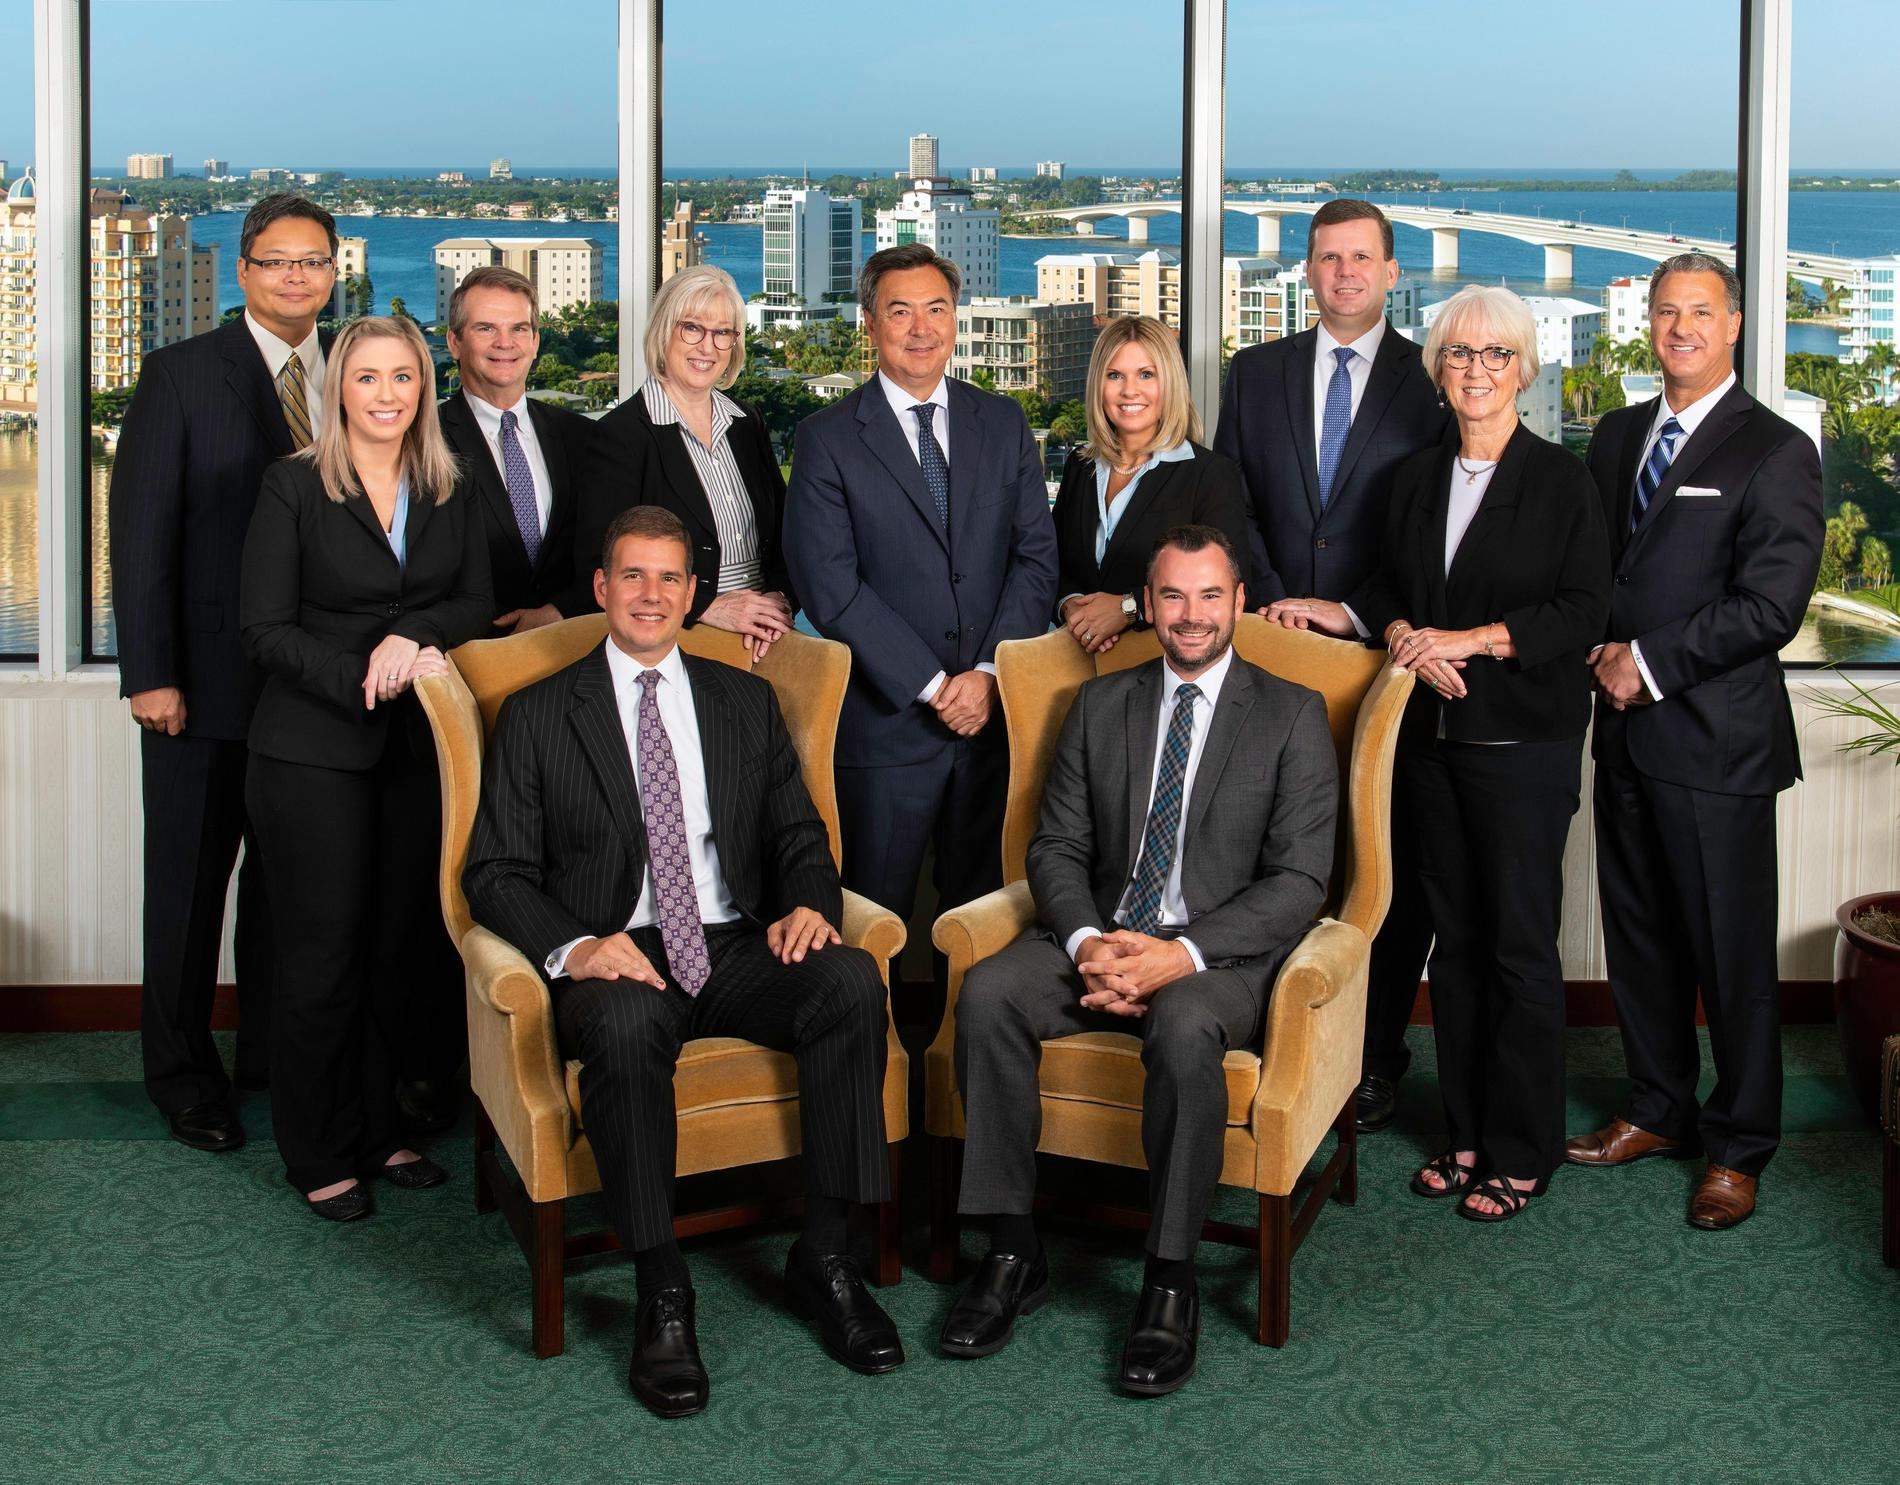 The Sarasota Bay Group | Sarasota, FL | Morgan Stanley